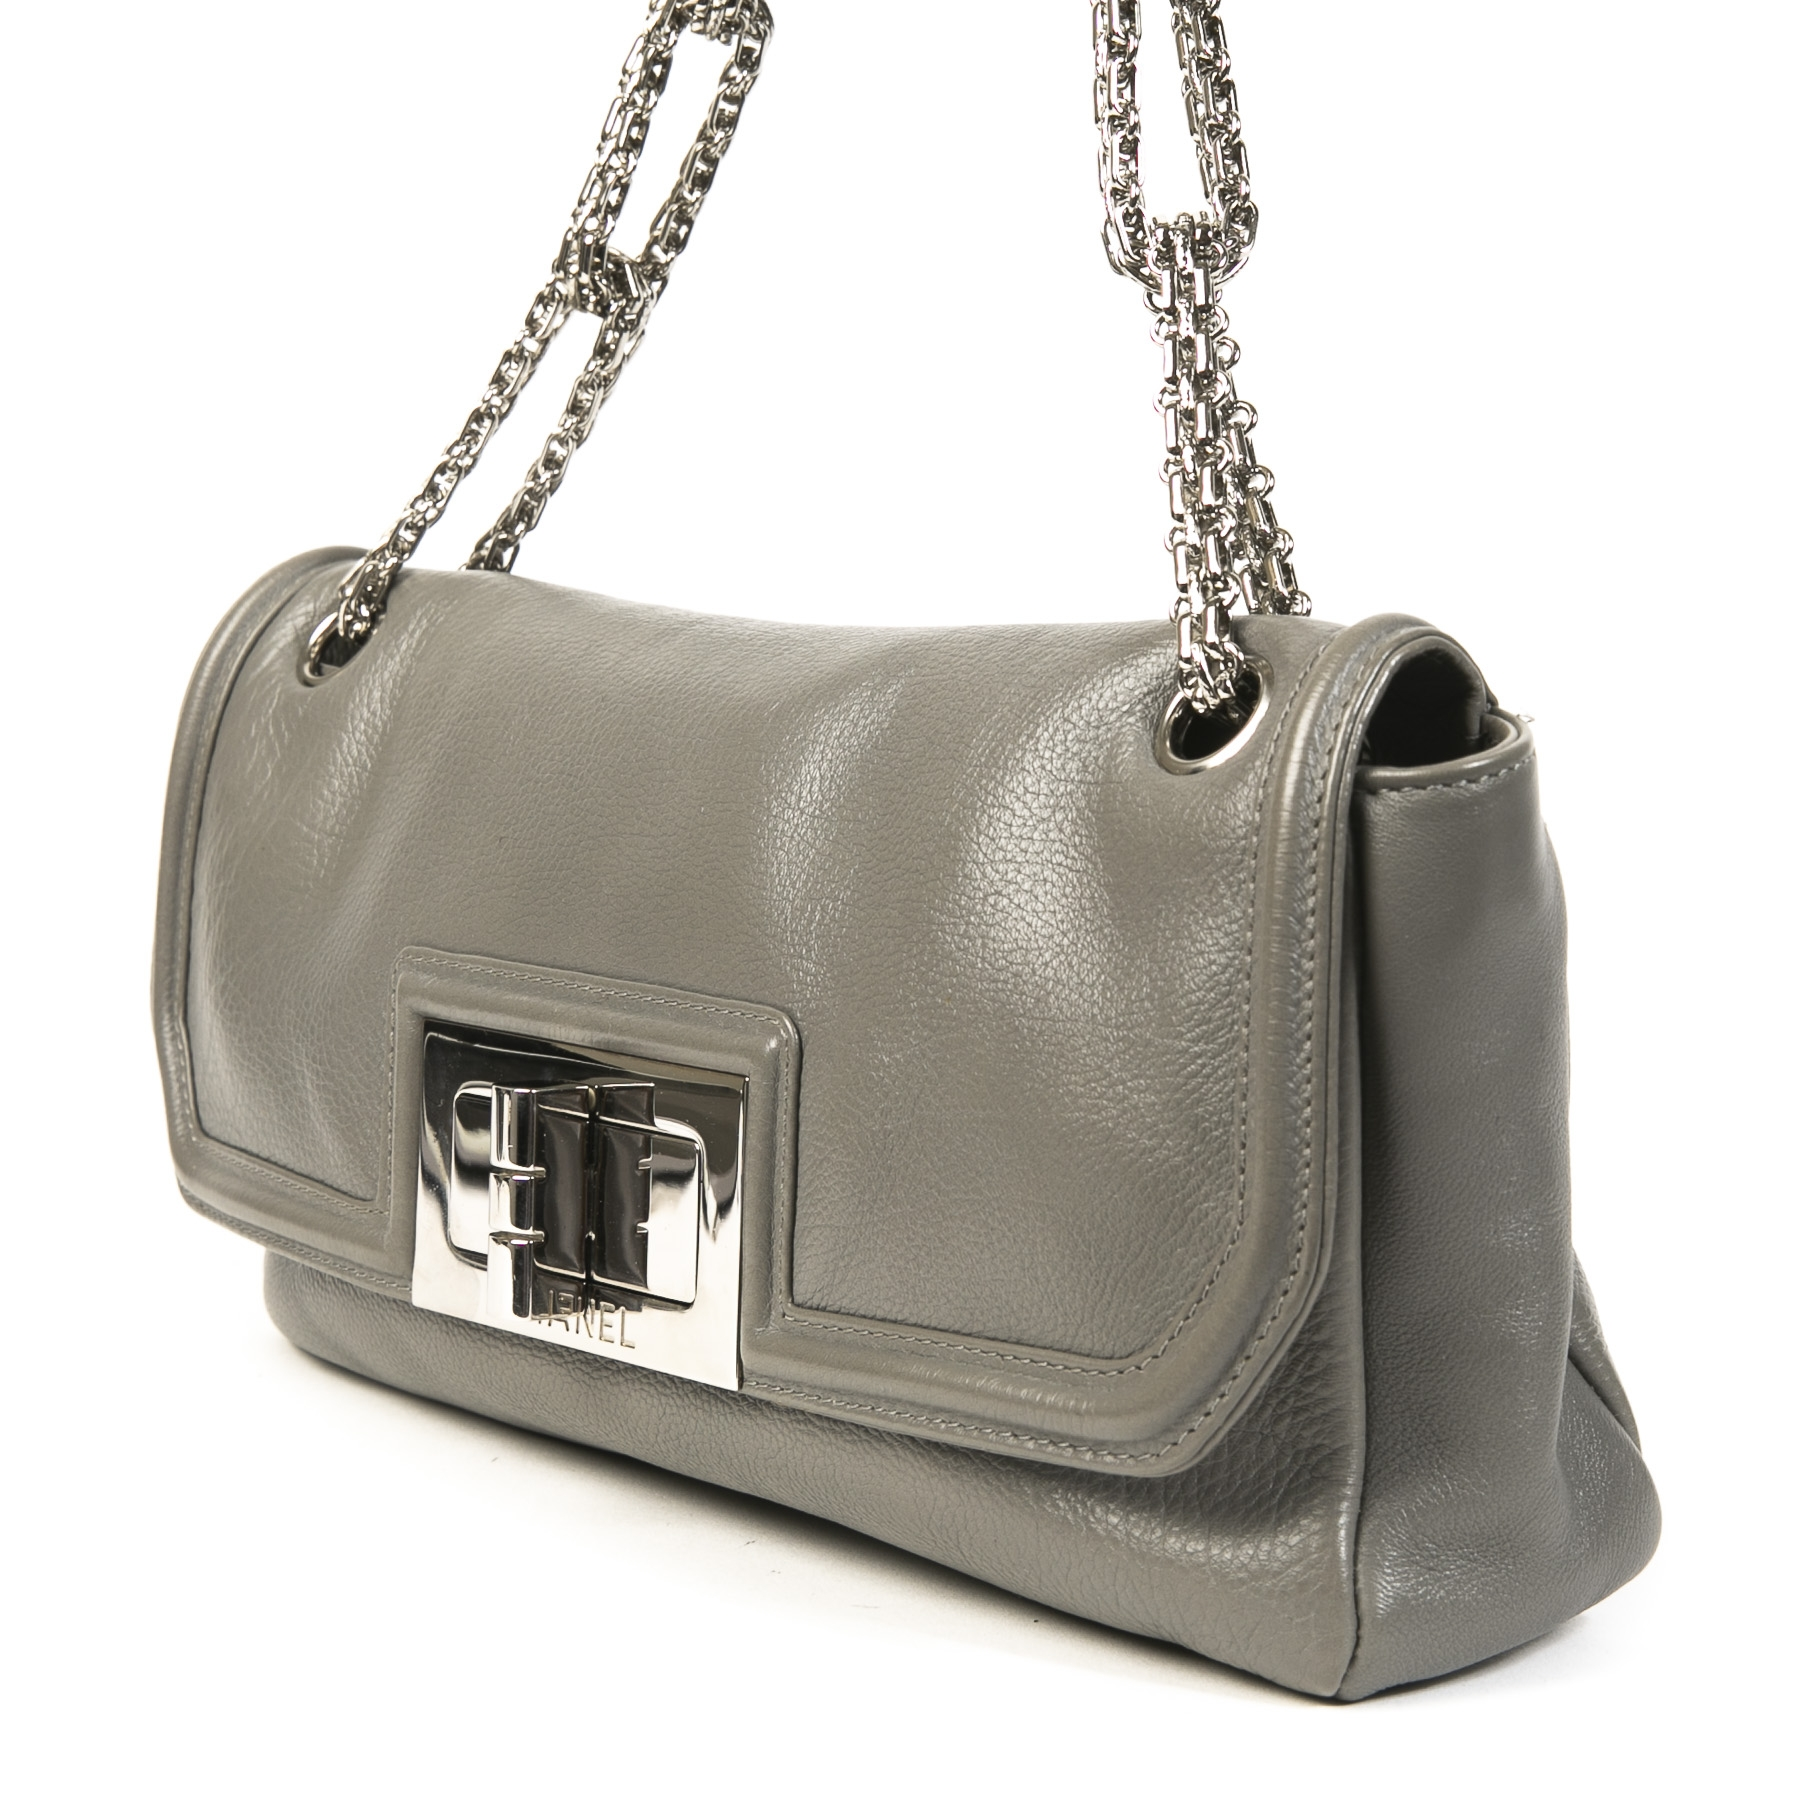 Chanel Charcoal Grey Flap Bag